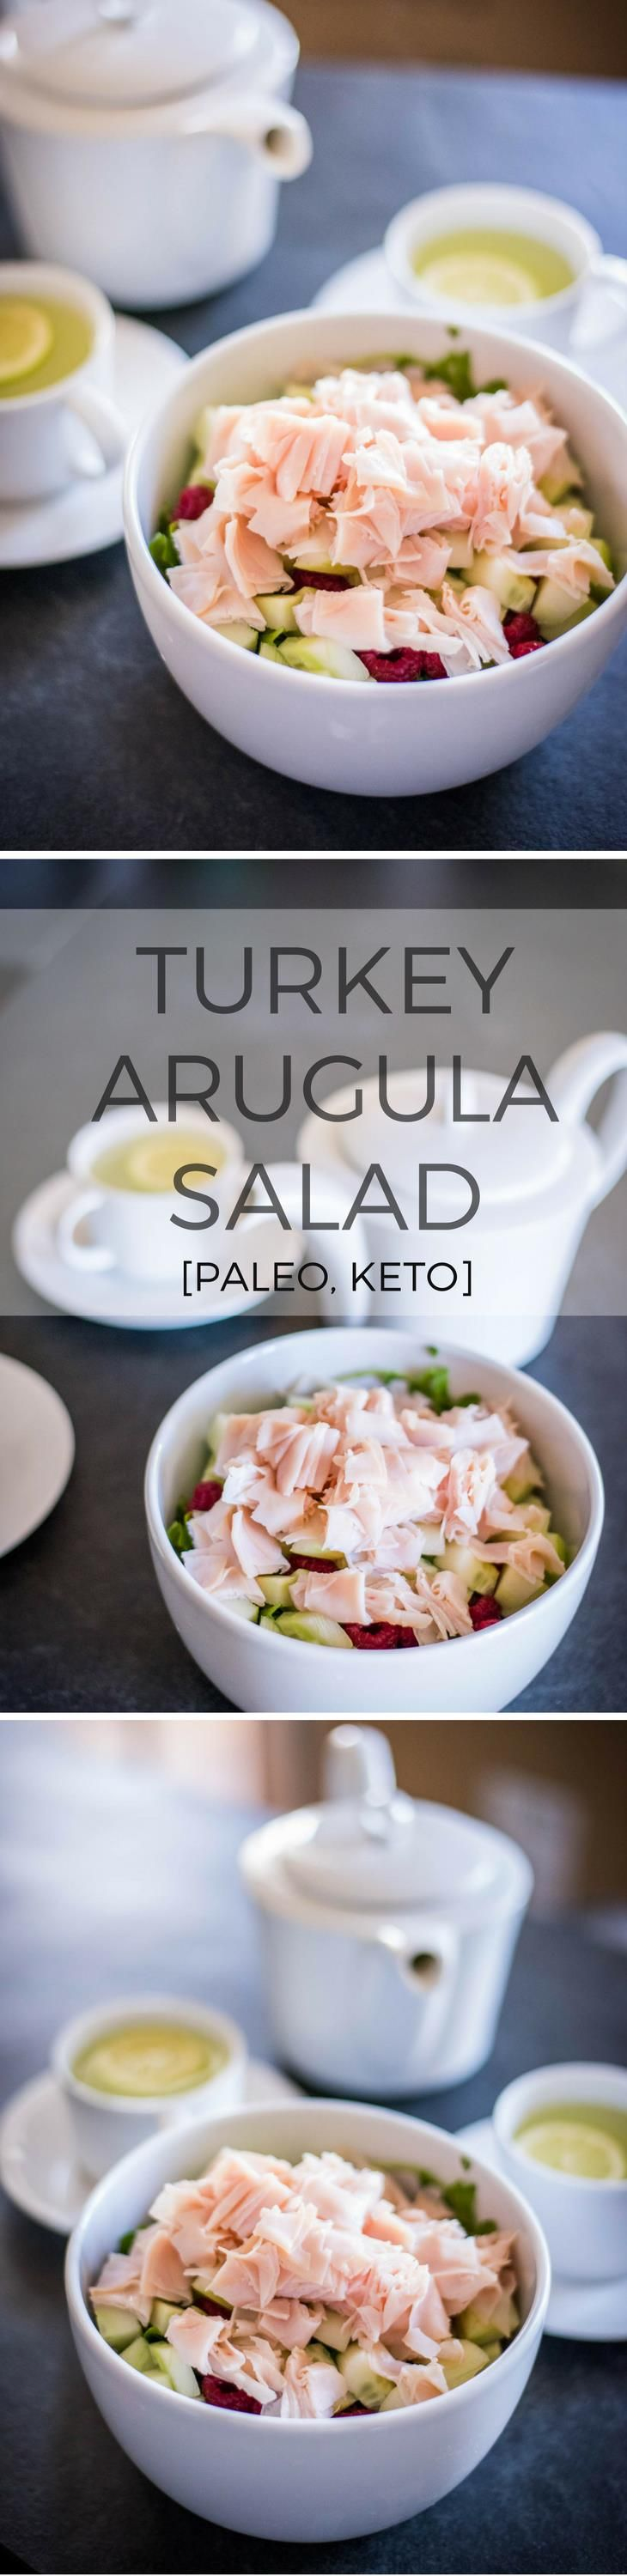 Simple Turkey Arugula Salad Recipe [Paleo, Keto]